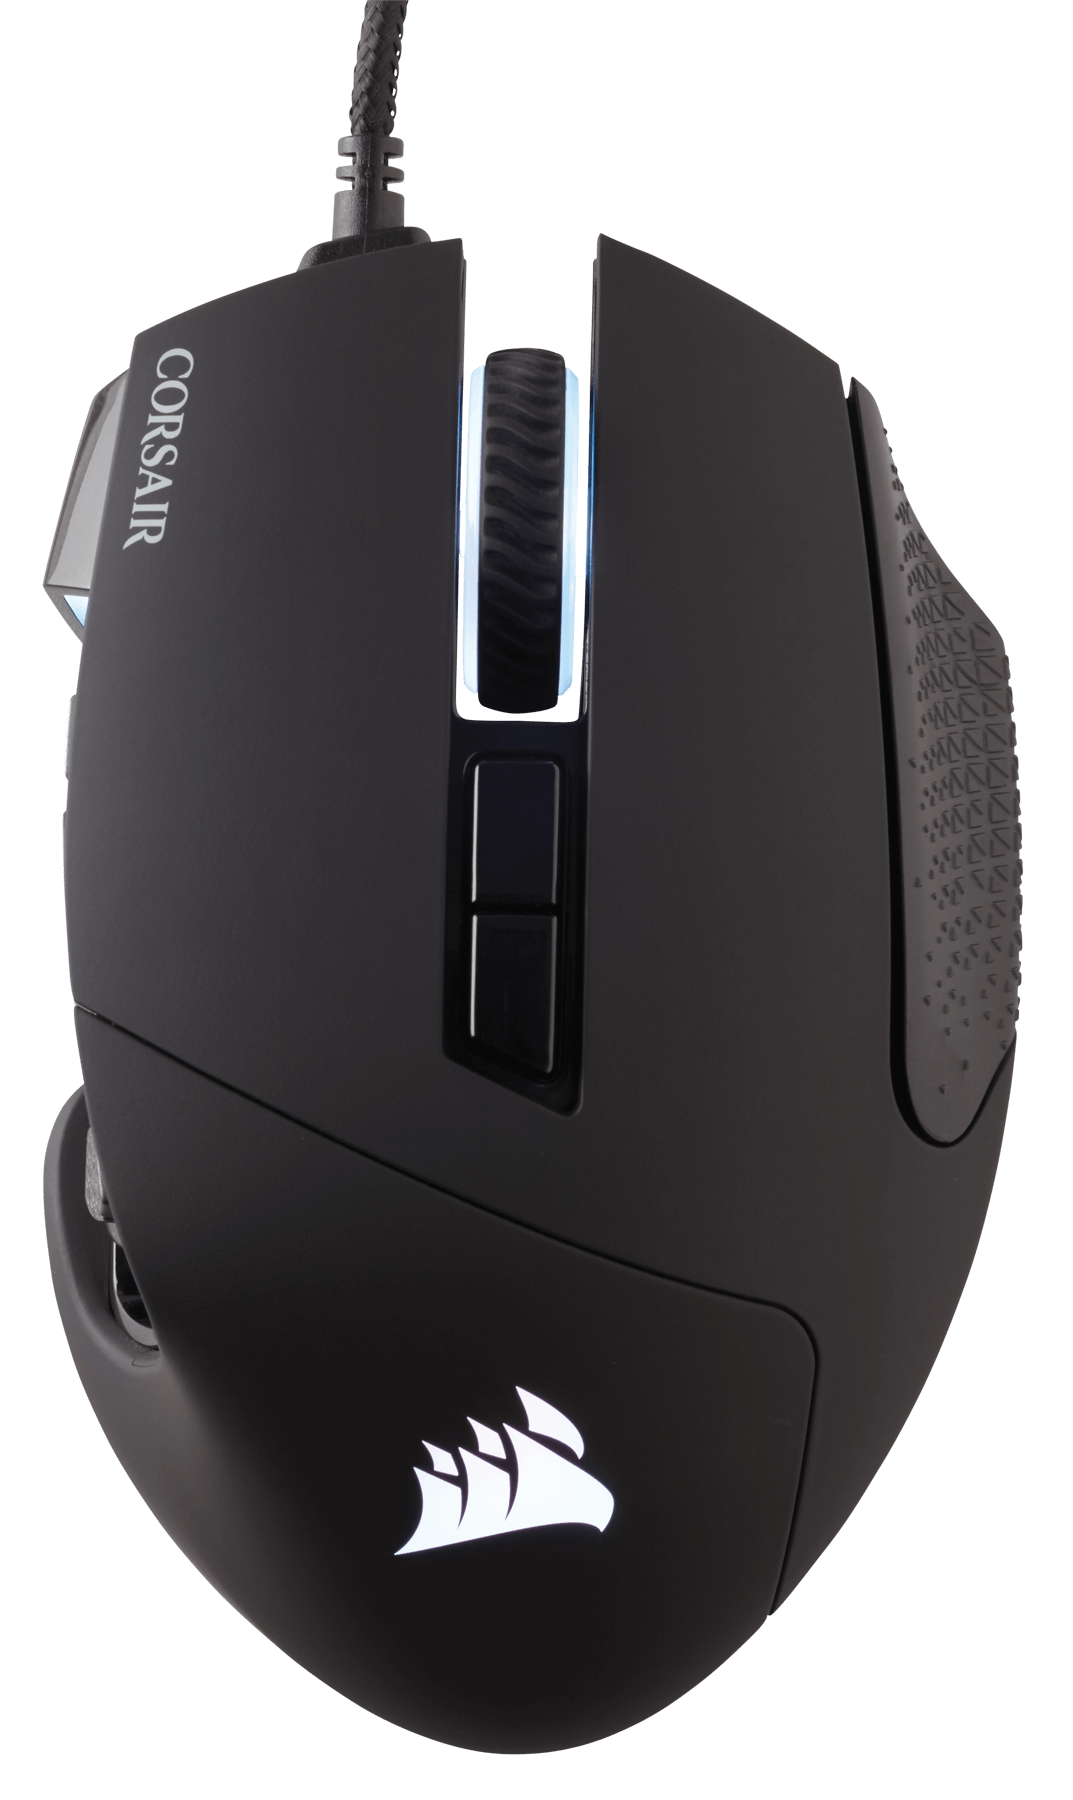 CORSAIR推出新款Scimitar PRO RGB Optical MOBA/MMO電競滑鼠 - XFastest - Scimitar_PRO_BLK_20.png